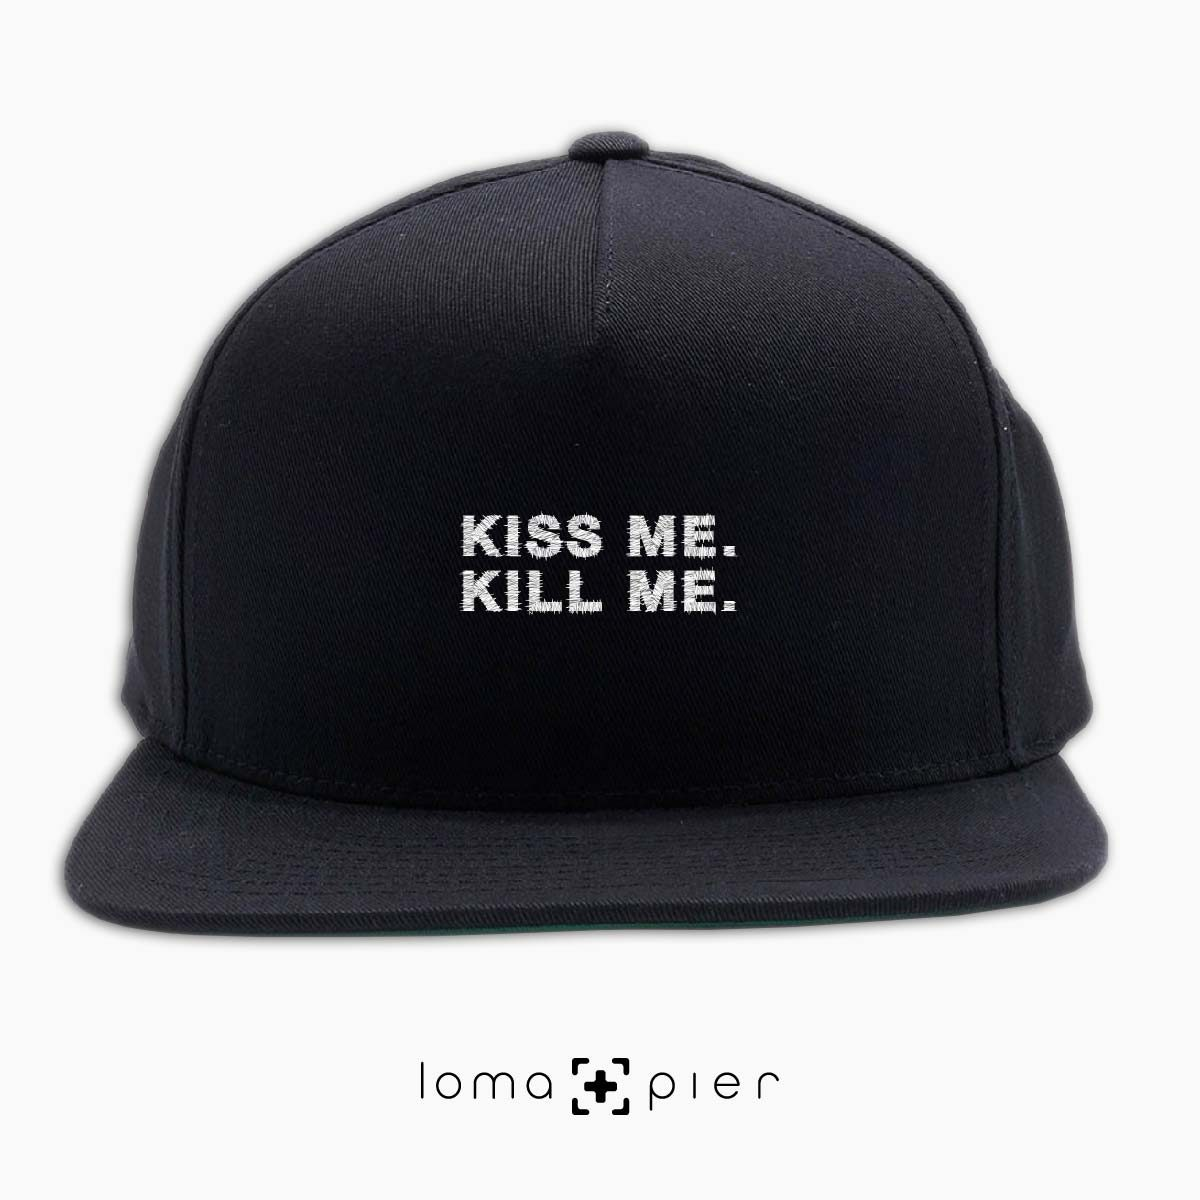 KISS ME. KILL ME. typography embroidered on a black classic snapback hat with white thread by loma+pier hat store